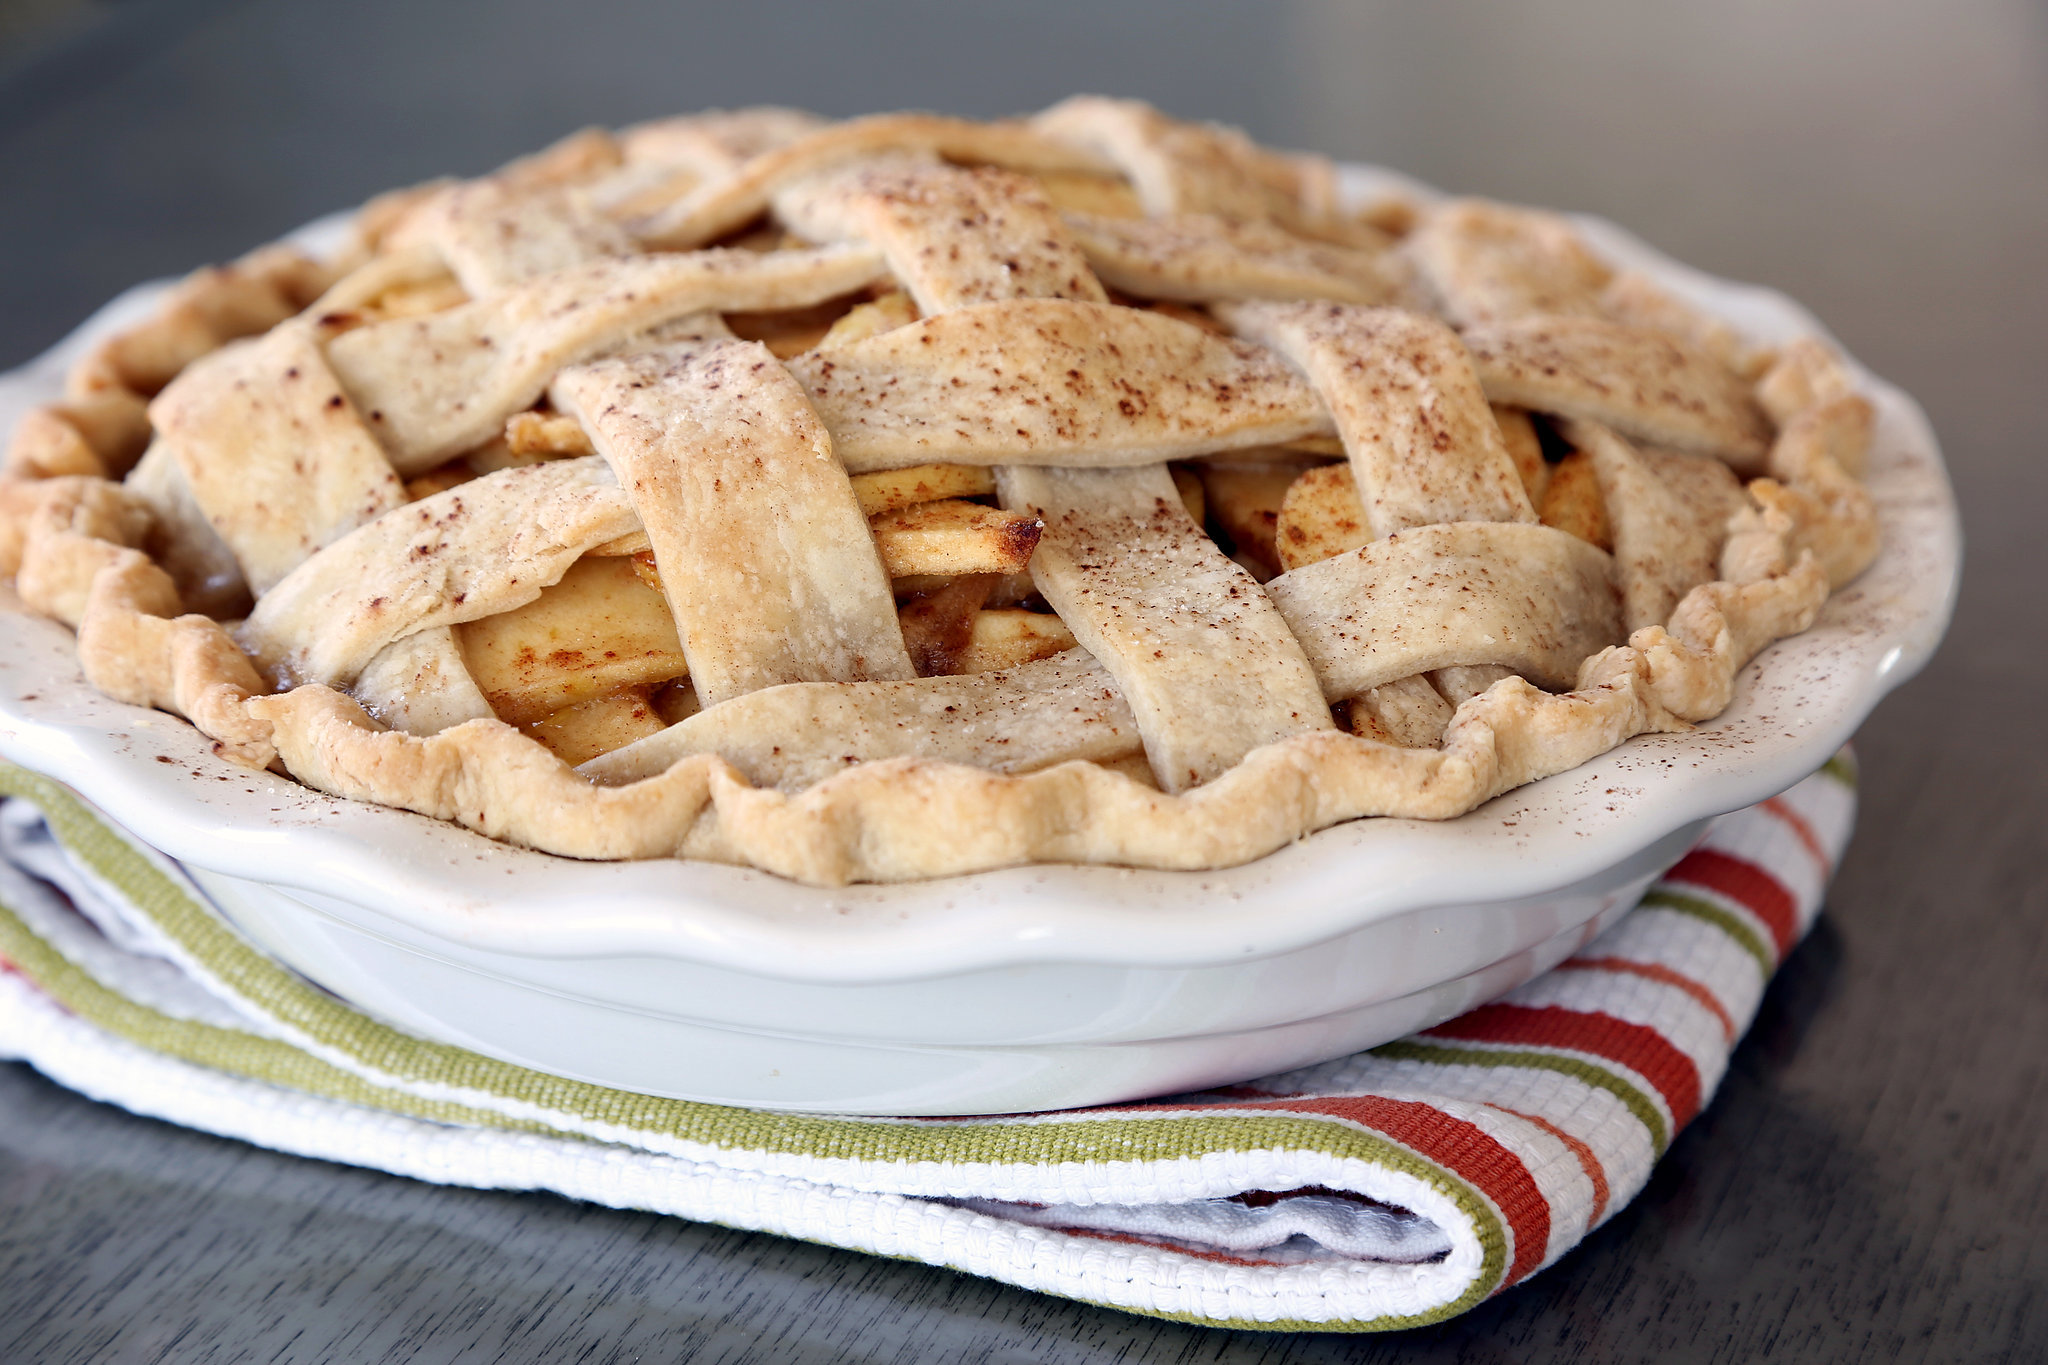 Apple Pie Recipe With Shortening | POPSUGAR Food